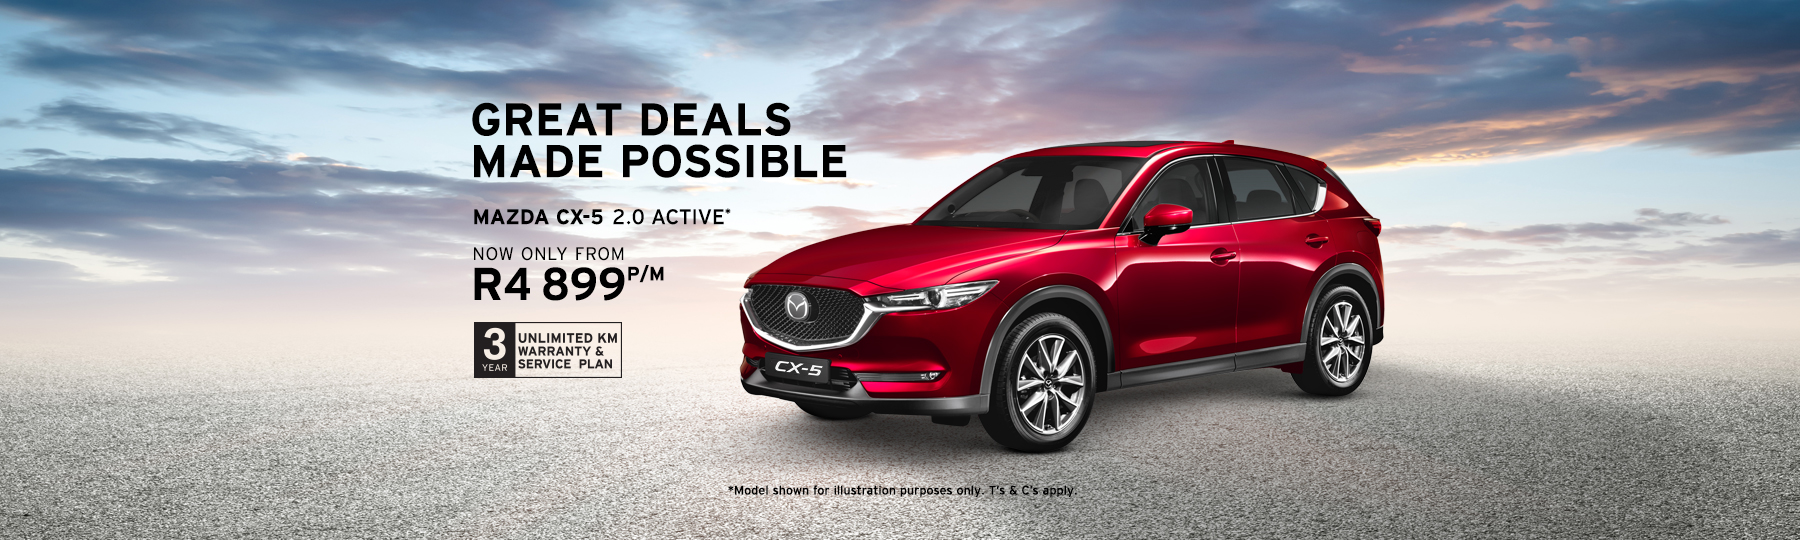 content/great-deals-made-possible-cx-5.html